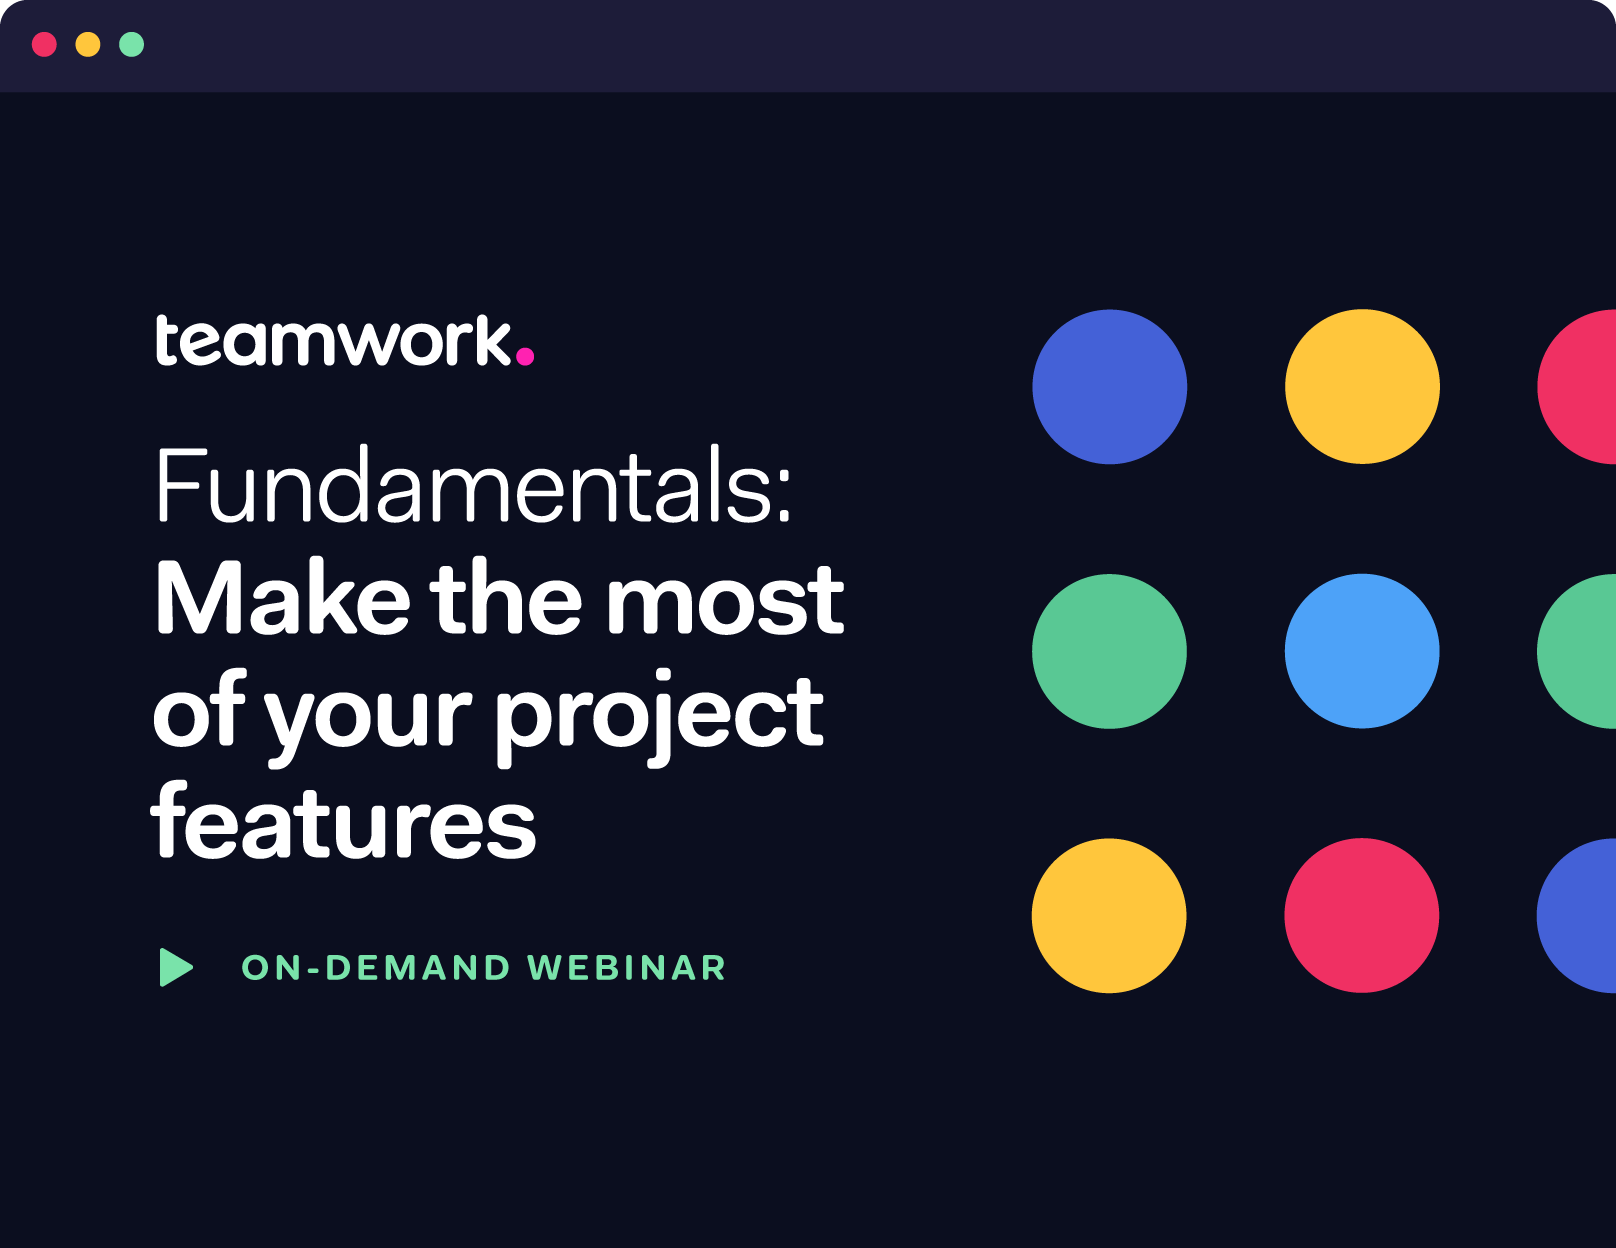 Fundamentals: Make the most of your project features